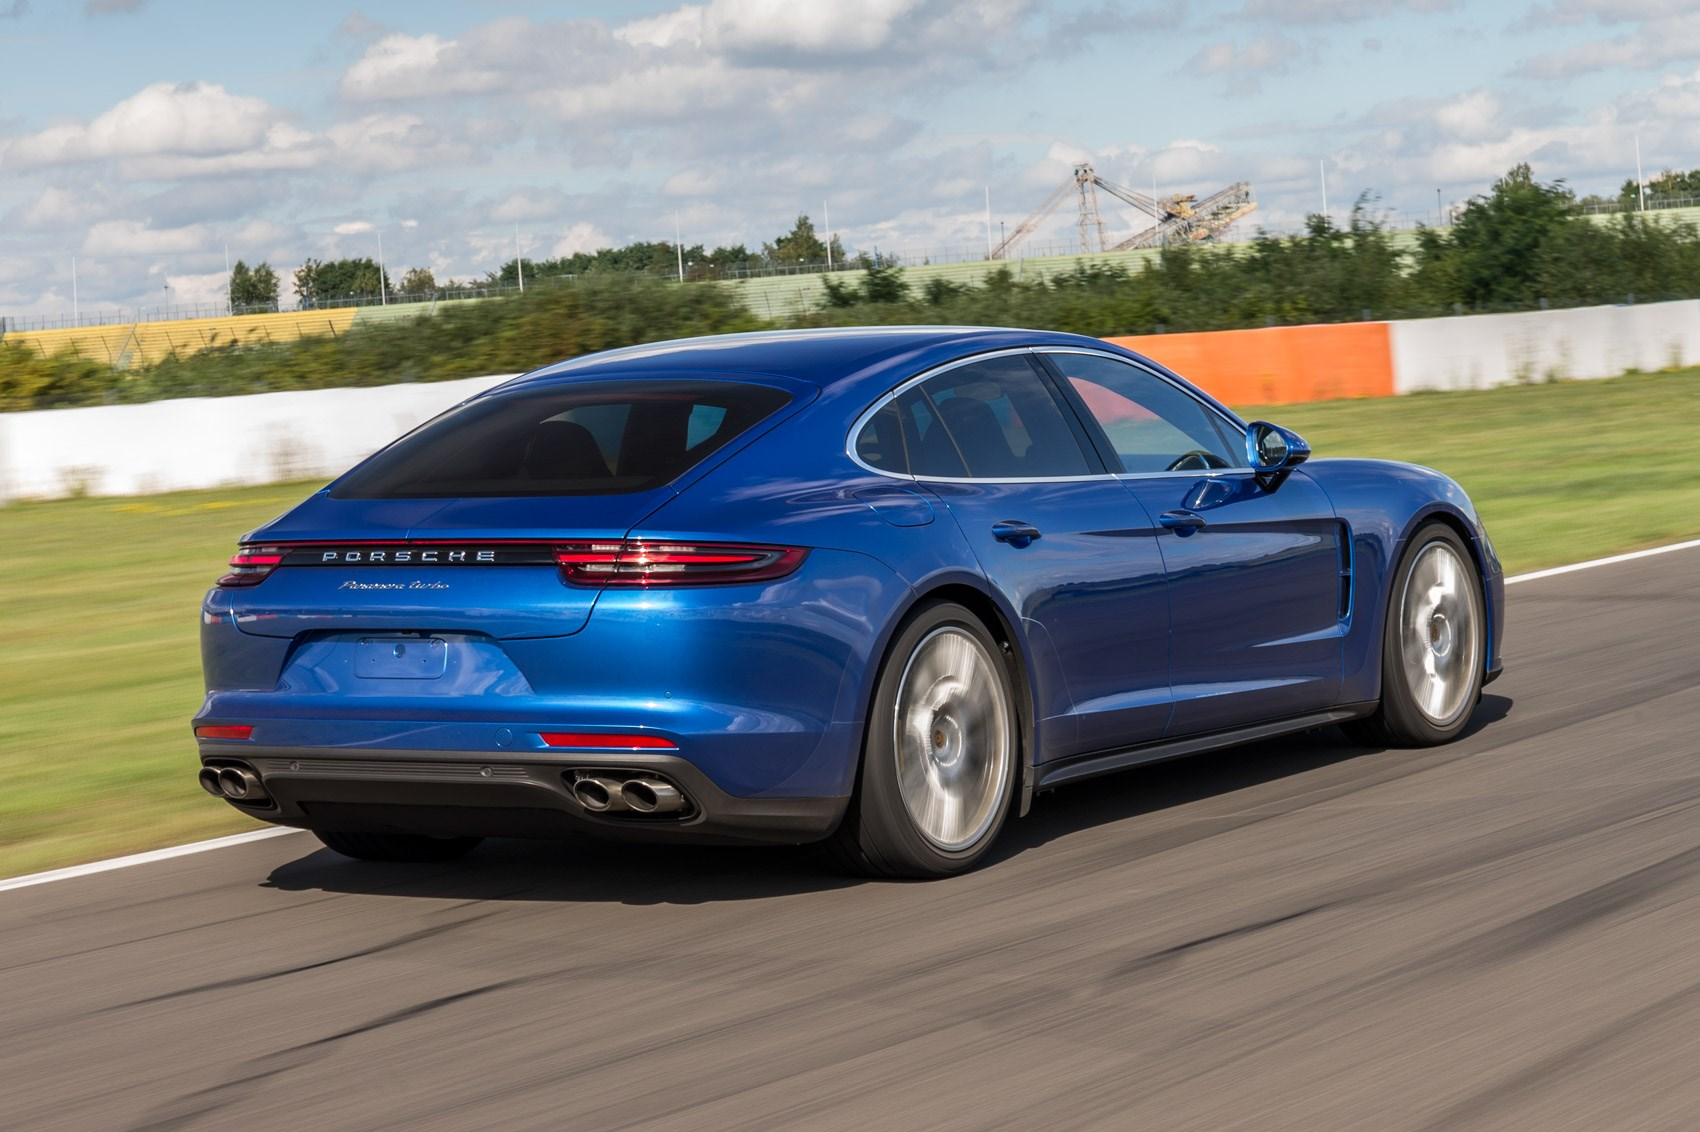 new porsche panamera preview 9 things we learned after a day with the pana ii by car magazine. Black Bedroom Furniture Sets. Home Design Ideas